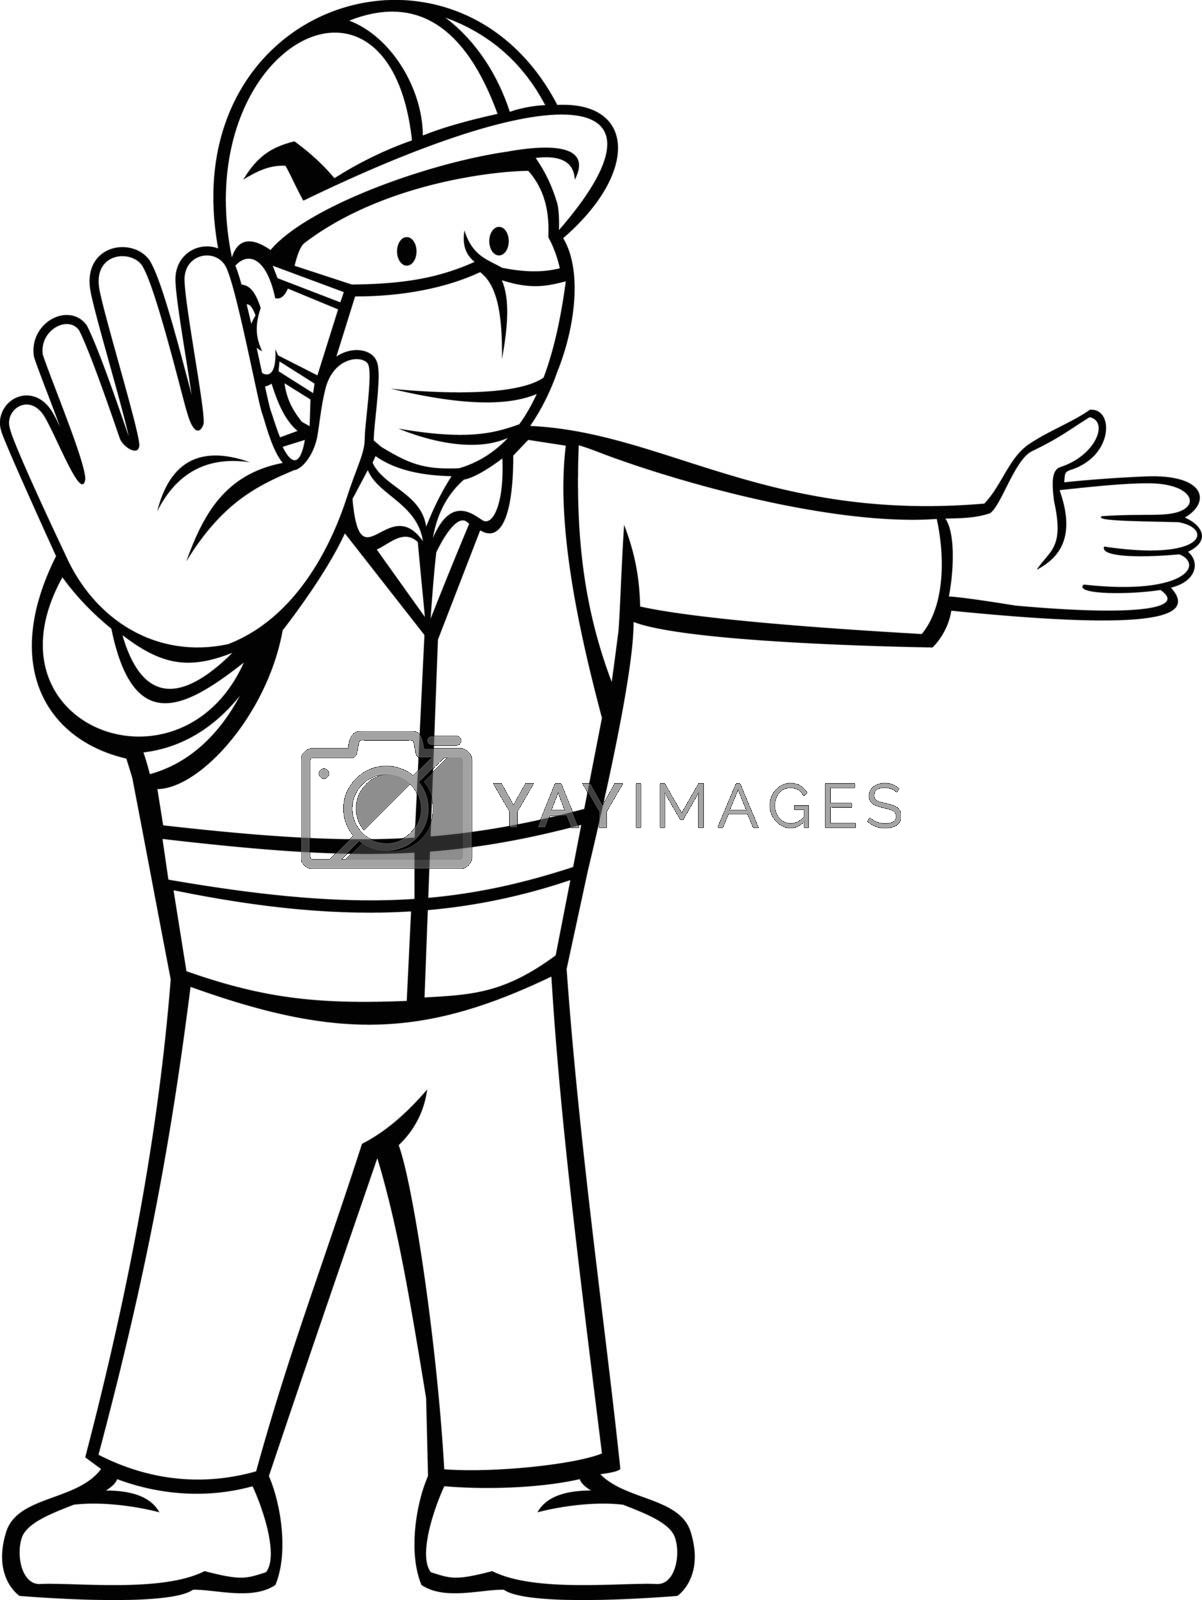 Black and white cartoon illustration of a construction worker wearing face mask showing stop hand signal and other hand pointing directing to side front view in retro style on isolated background.